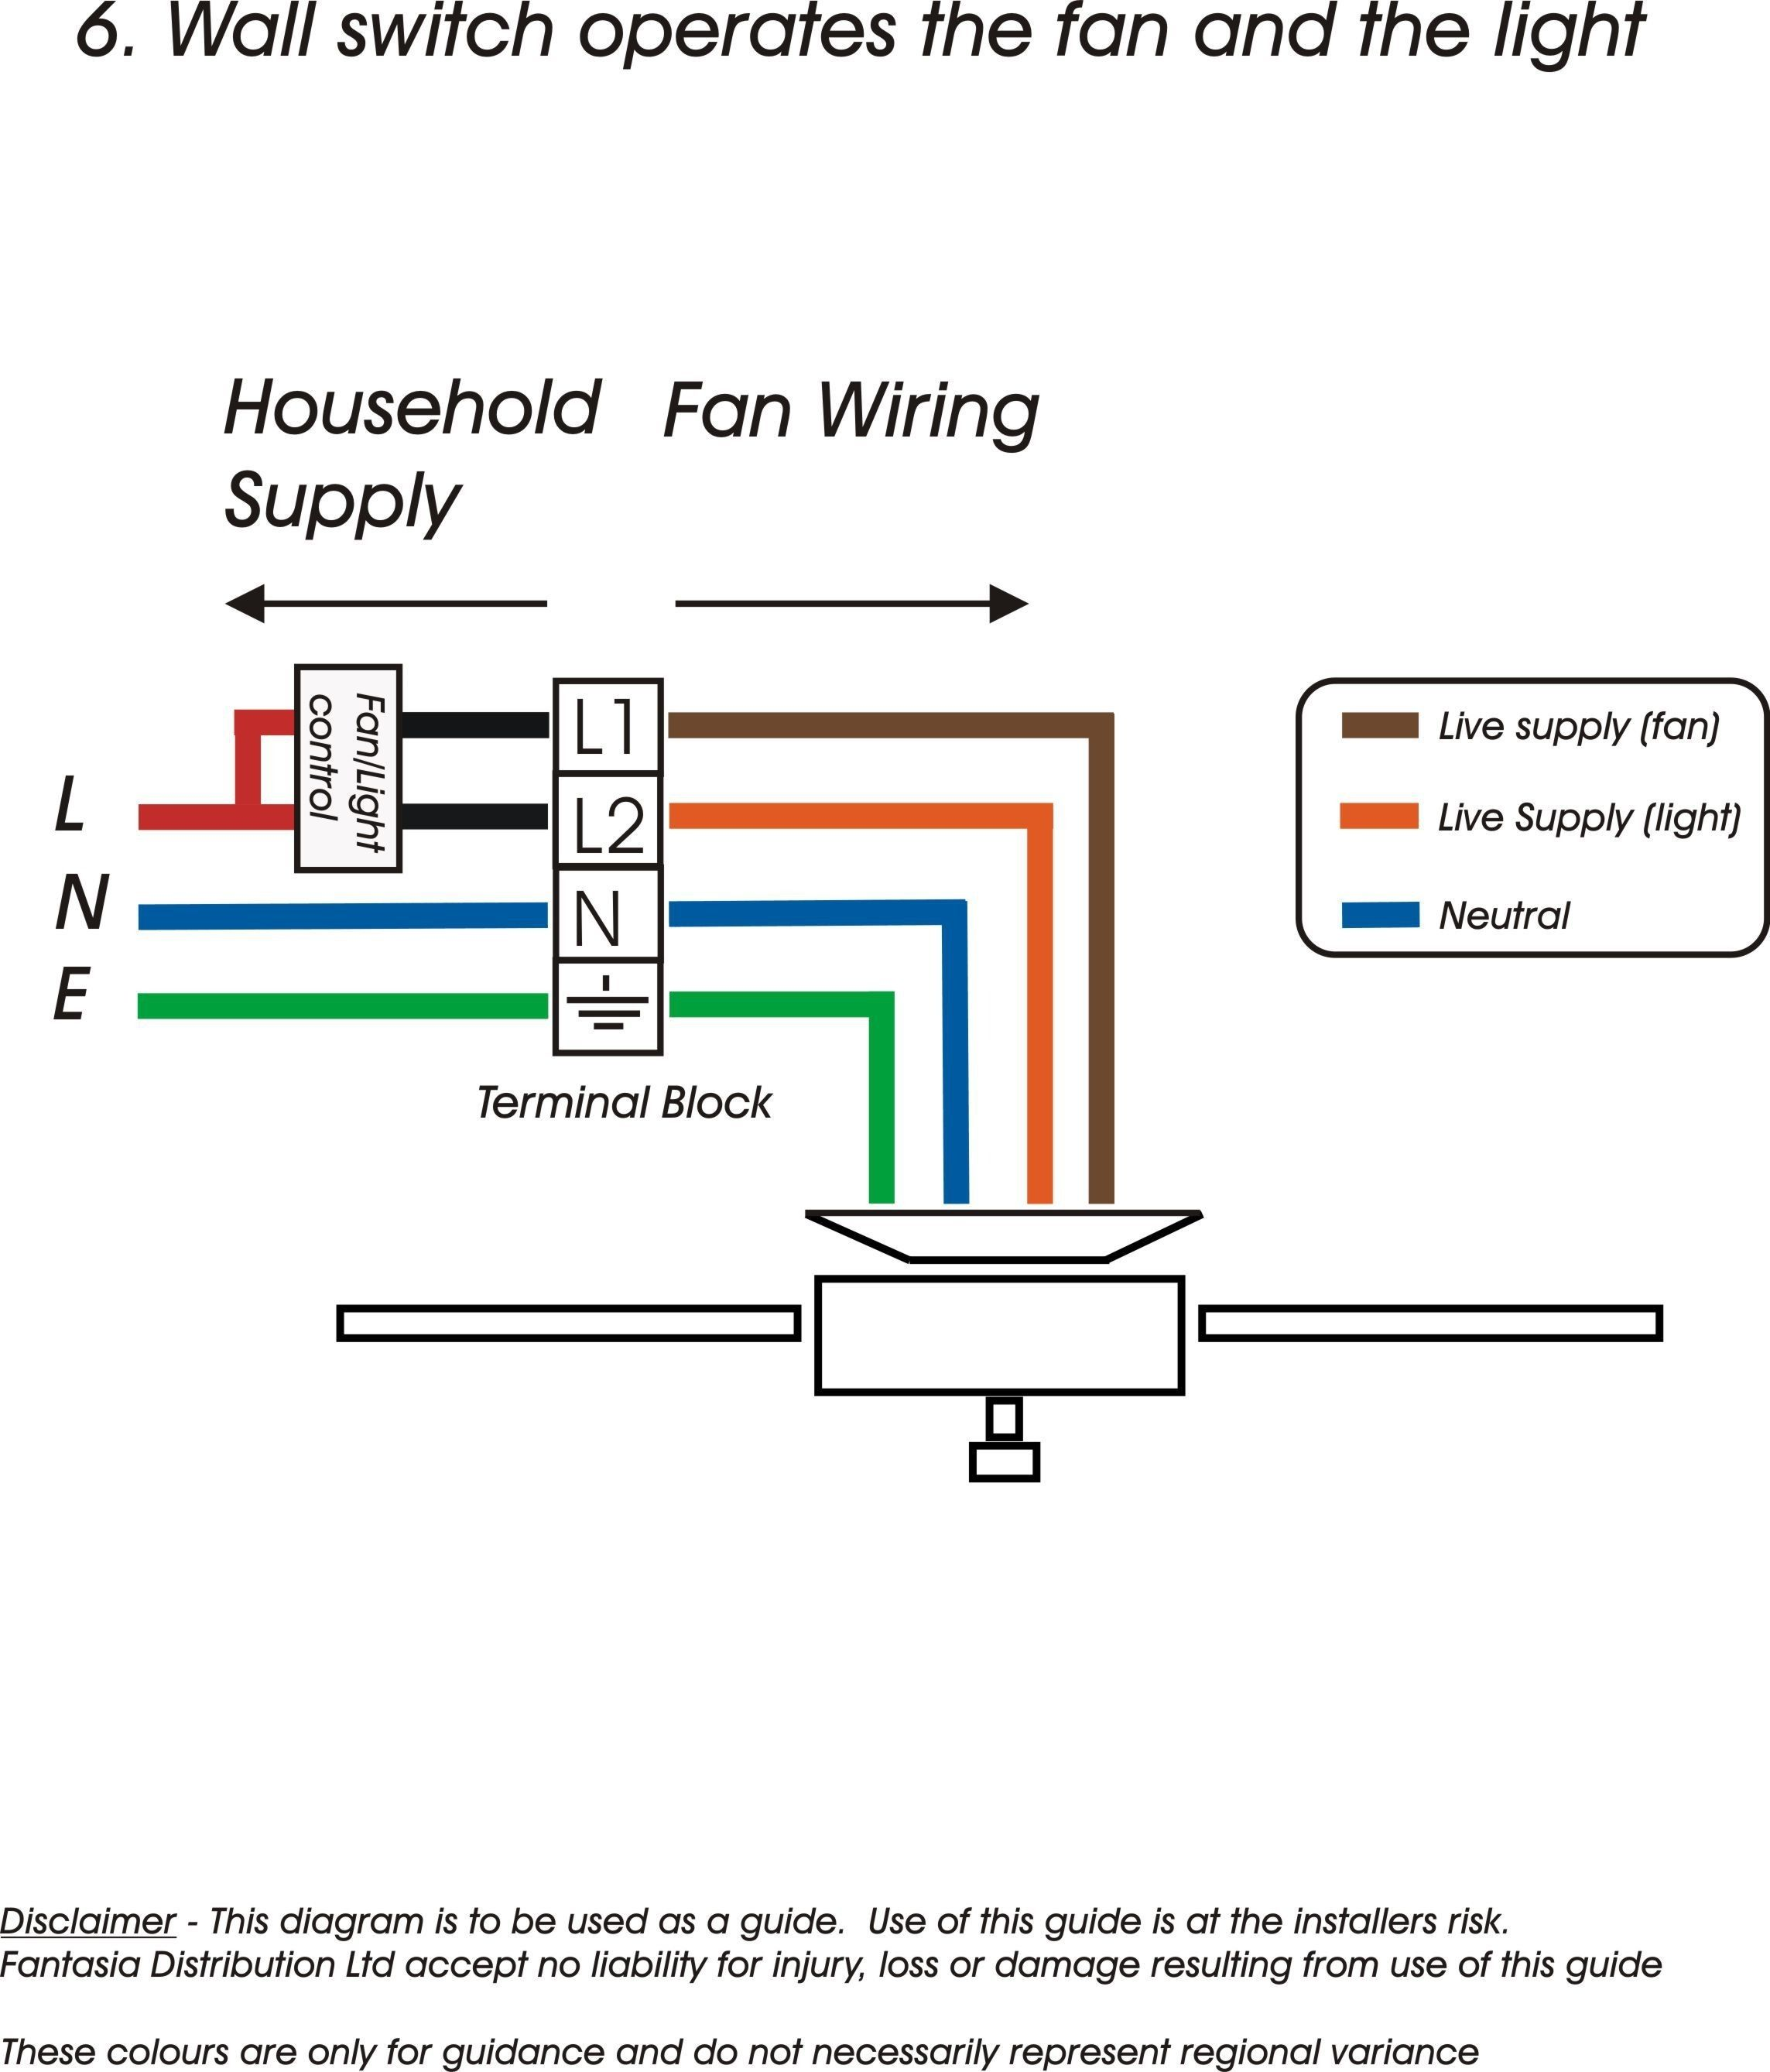 electrical loop wiring diagram wiringdiagram org wiringdiagram rh pinterest com Ceiling Fans with Lights Wiring-Diagram wiring diagram for bathroom exhaust fan and light